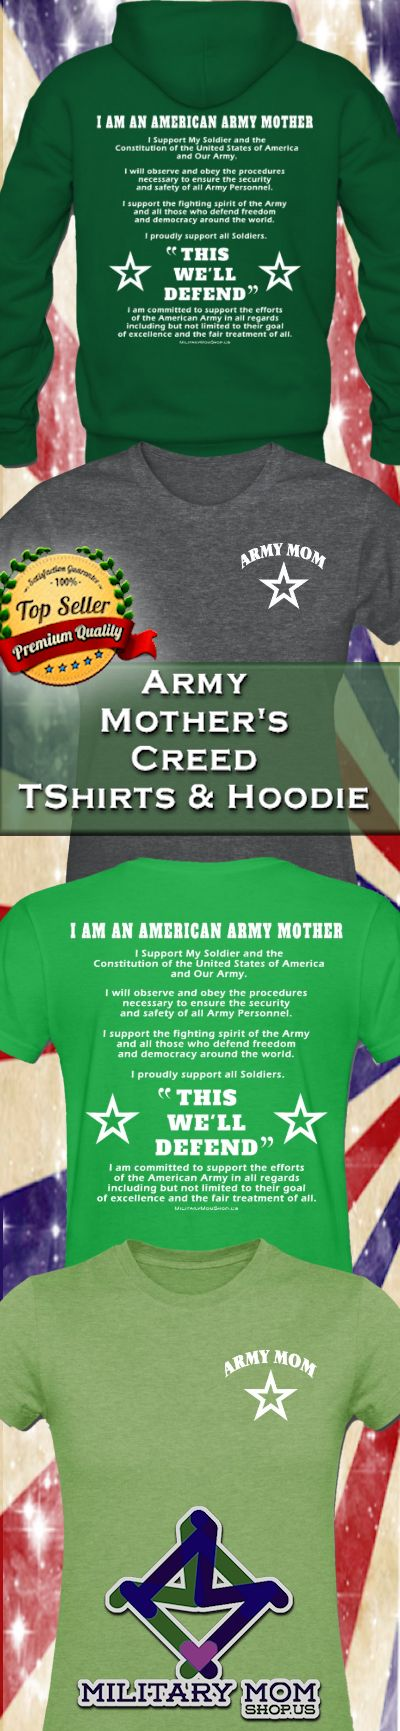 ARMY MOTHER'S CREED SHIRTS & HOODIES ArmyMom